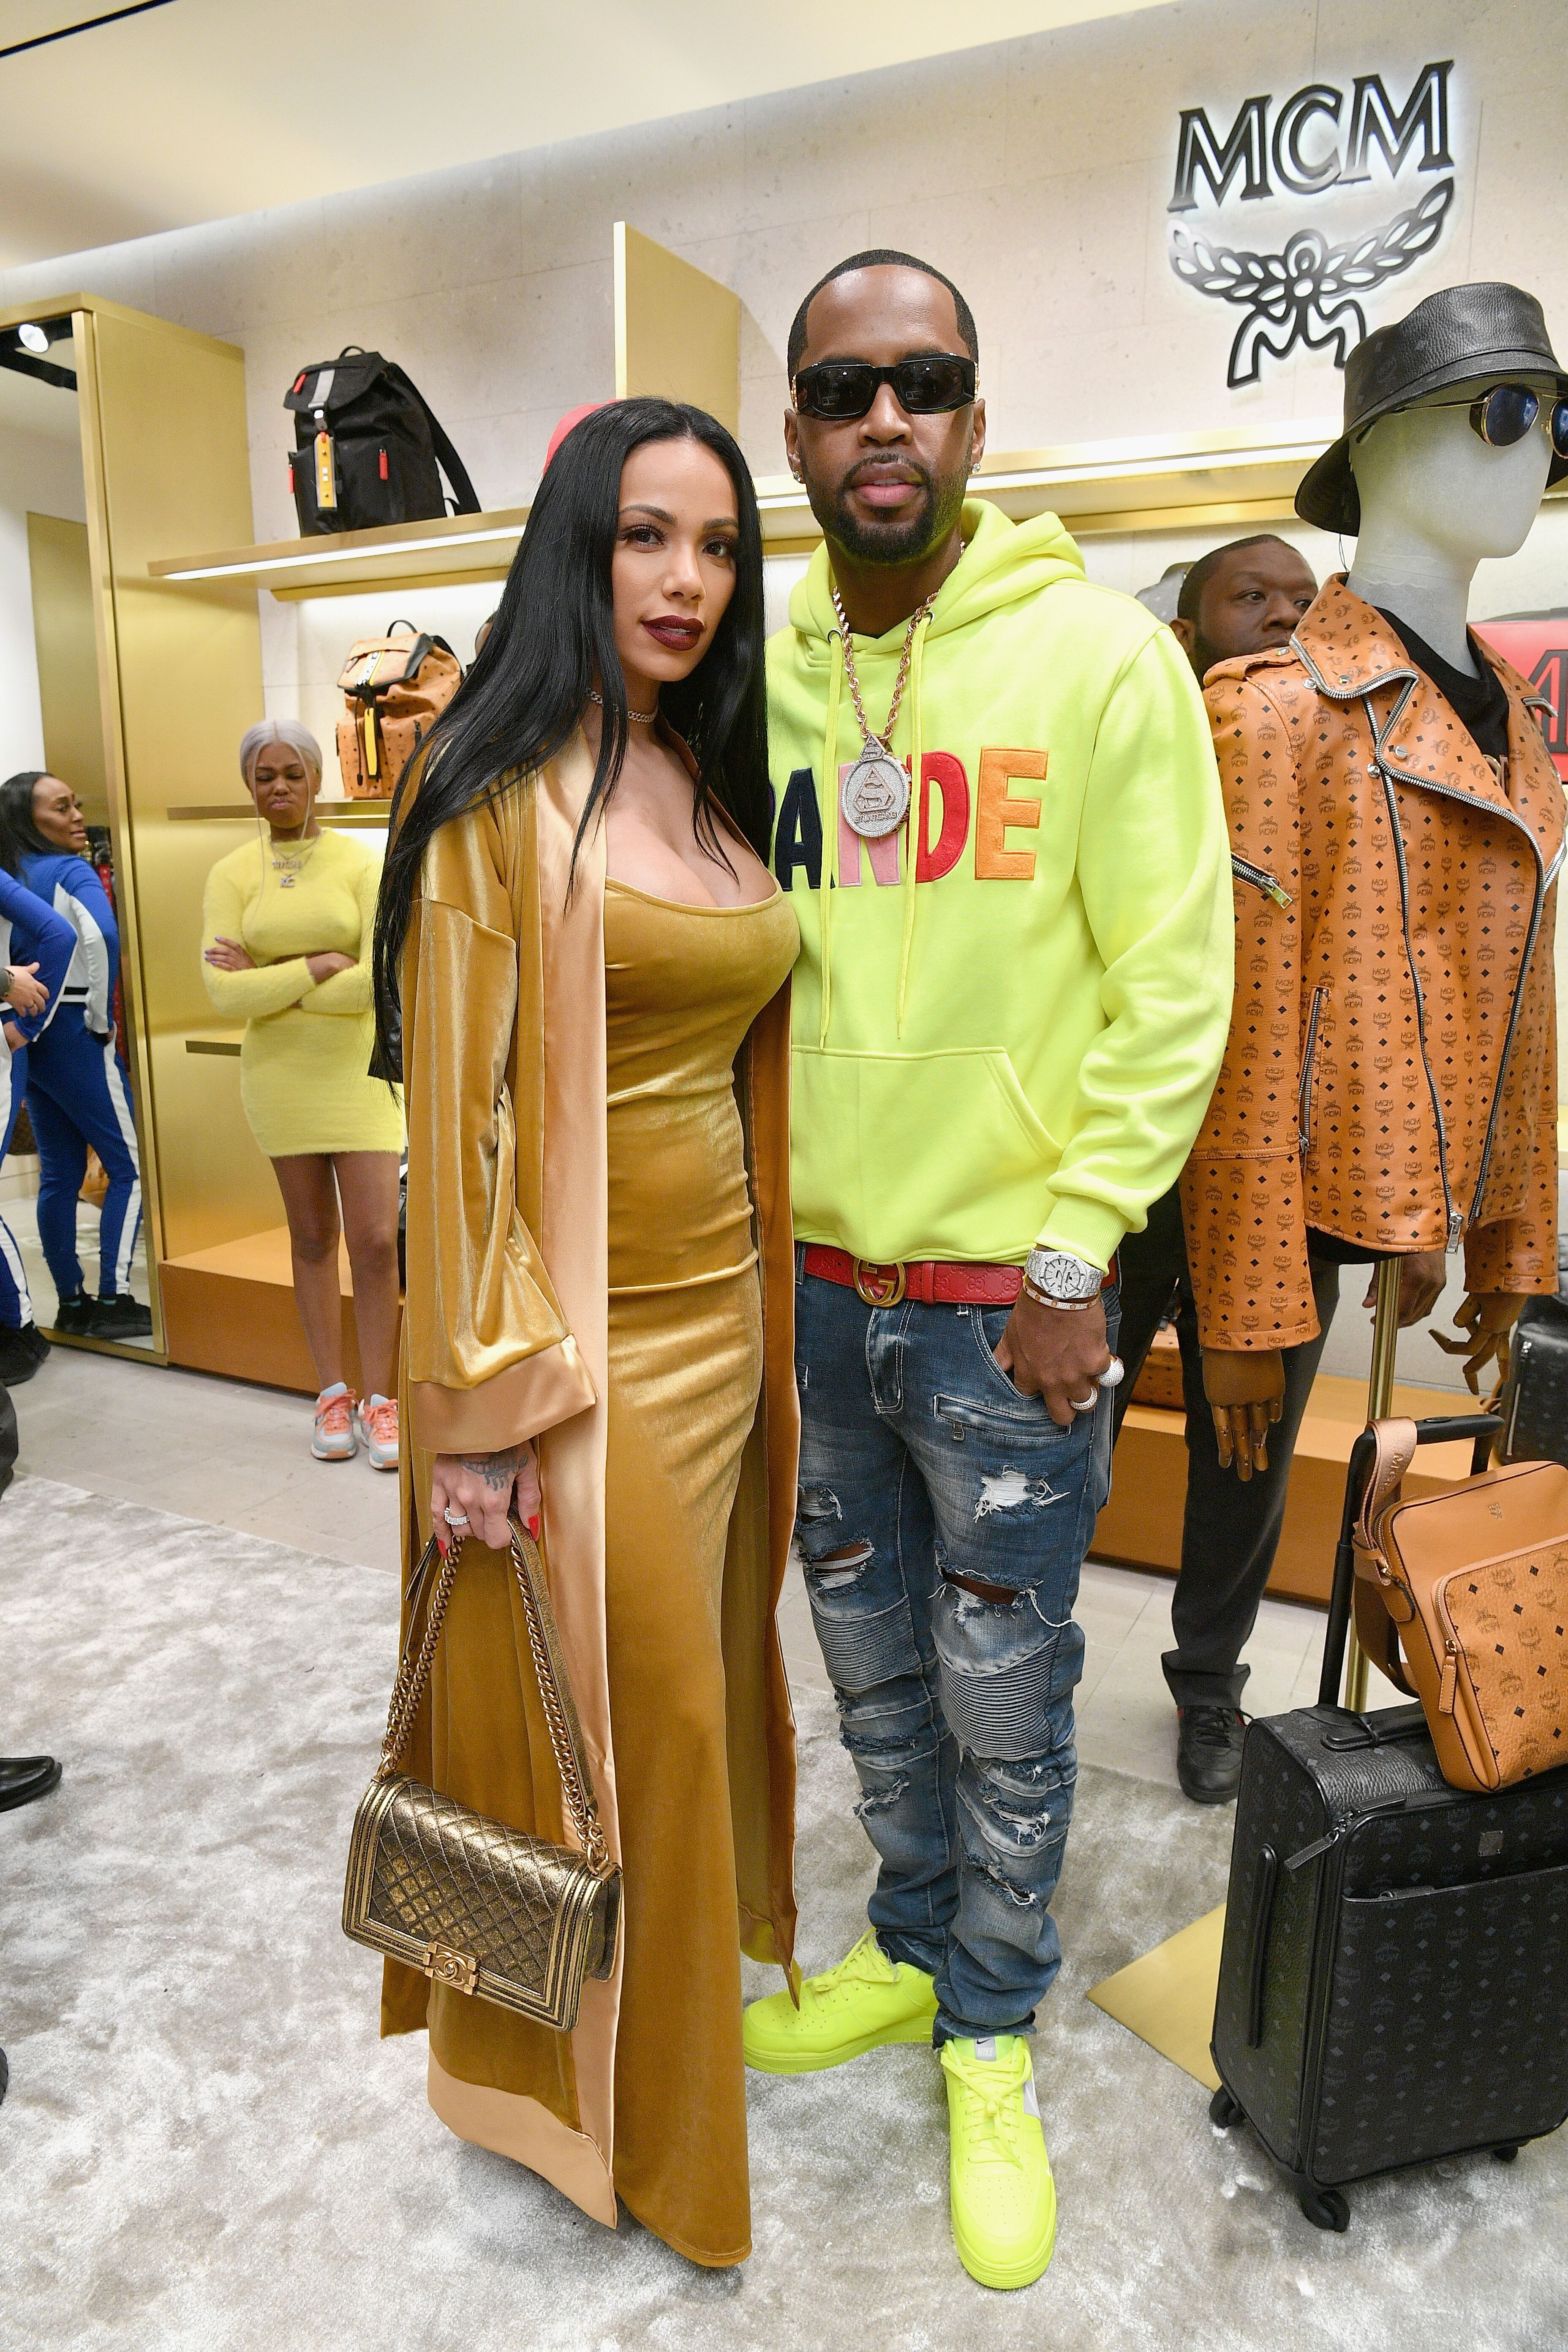 Safaree Samuels and Erica Mena at an MCM event | Source: Getty Images/GlobalImagesUkraine